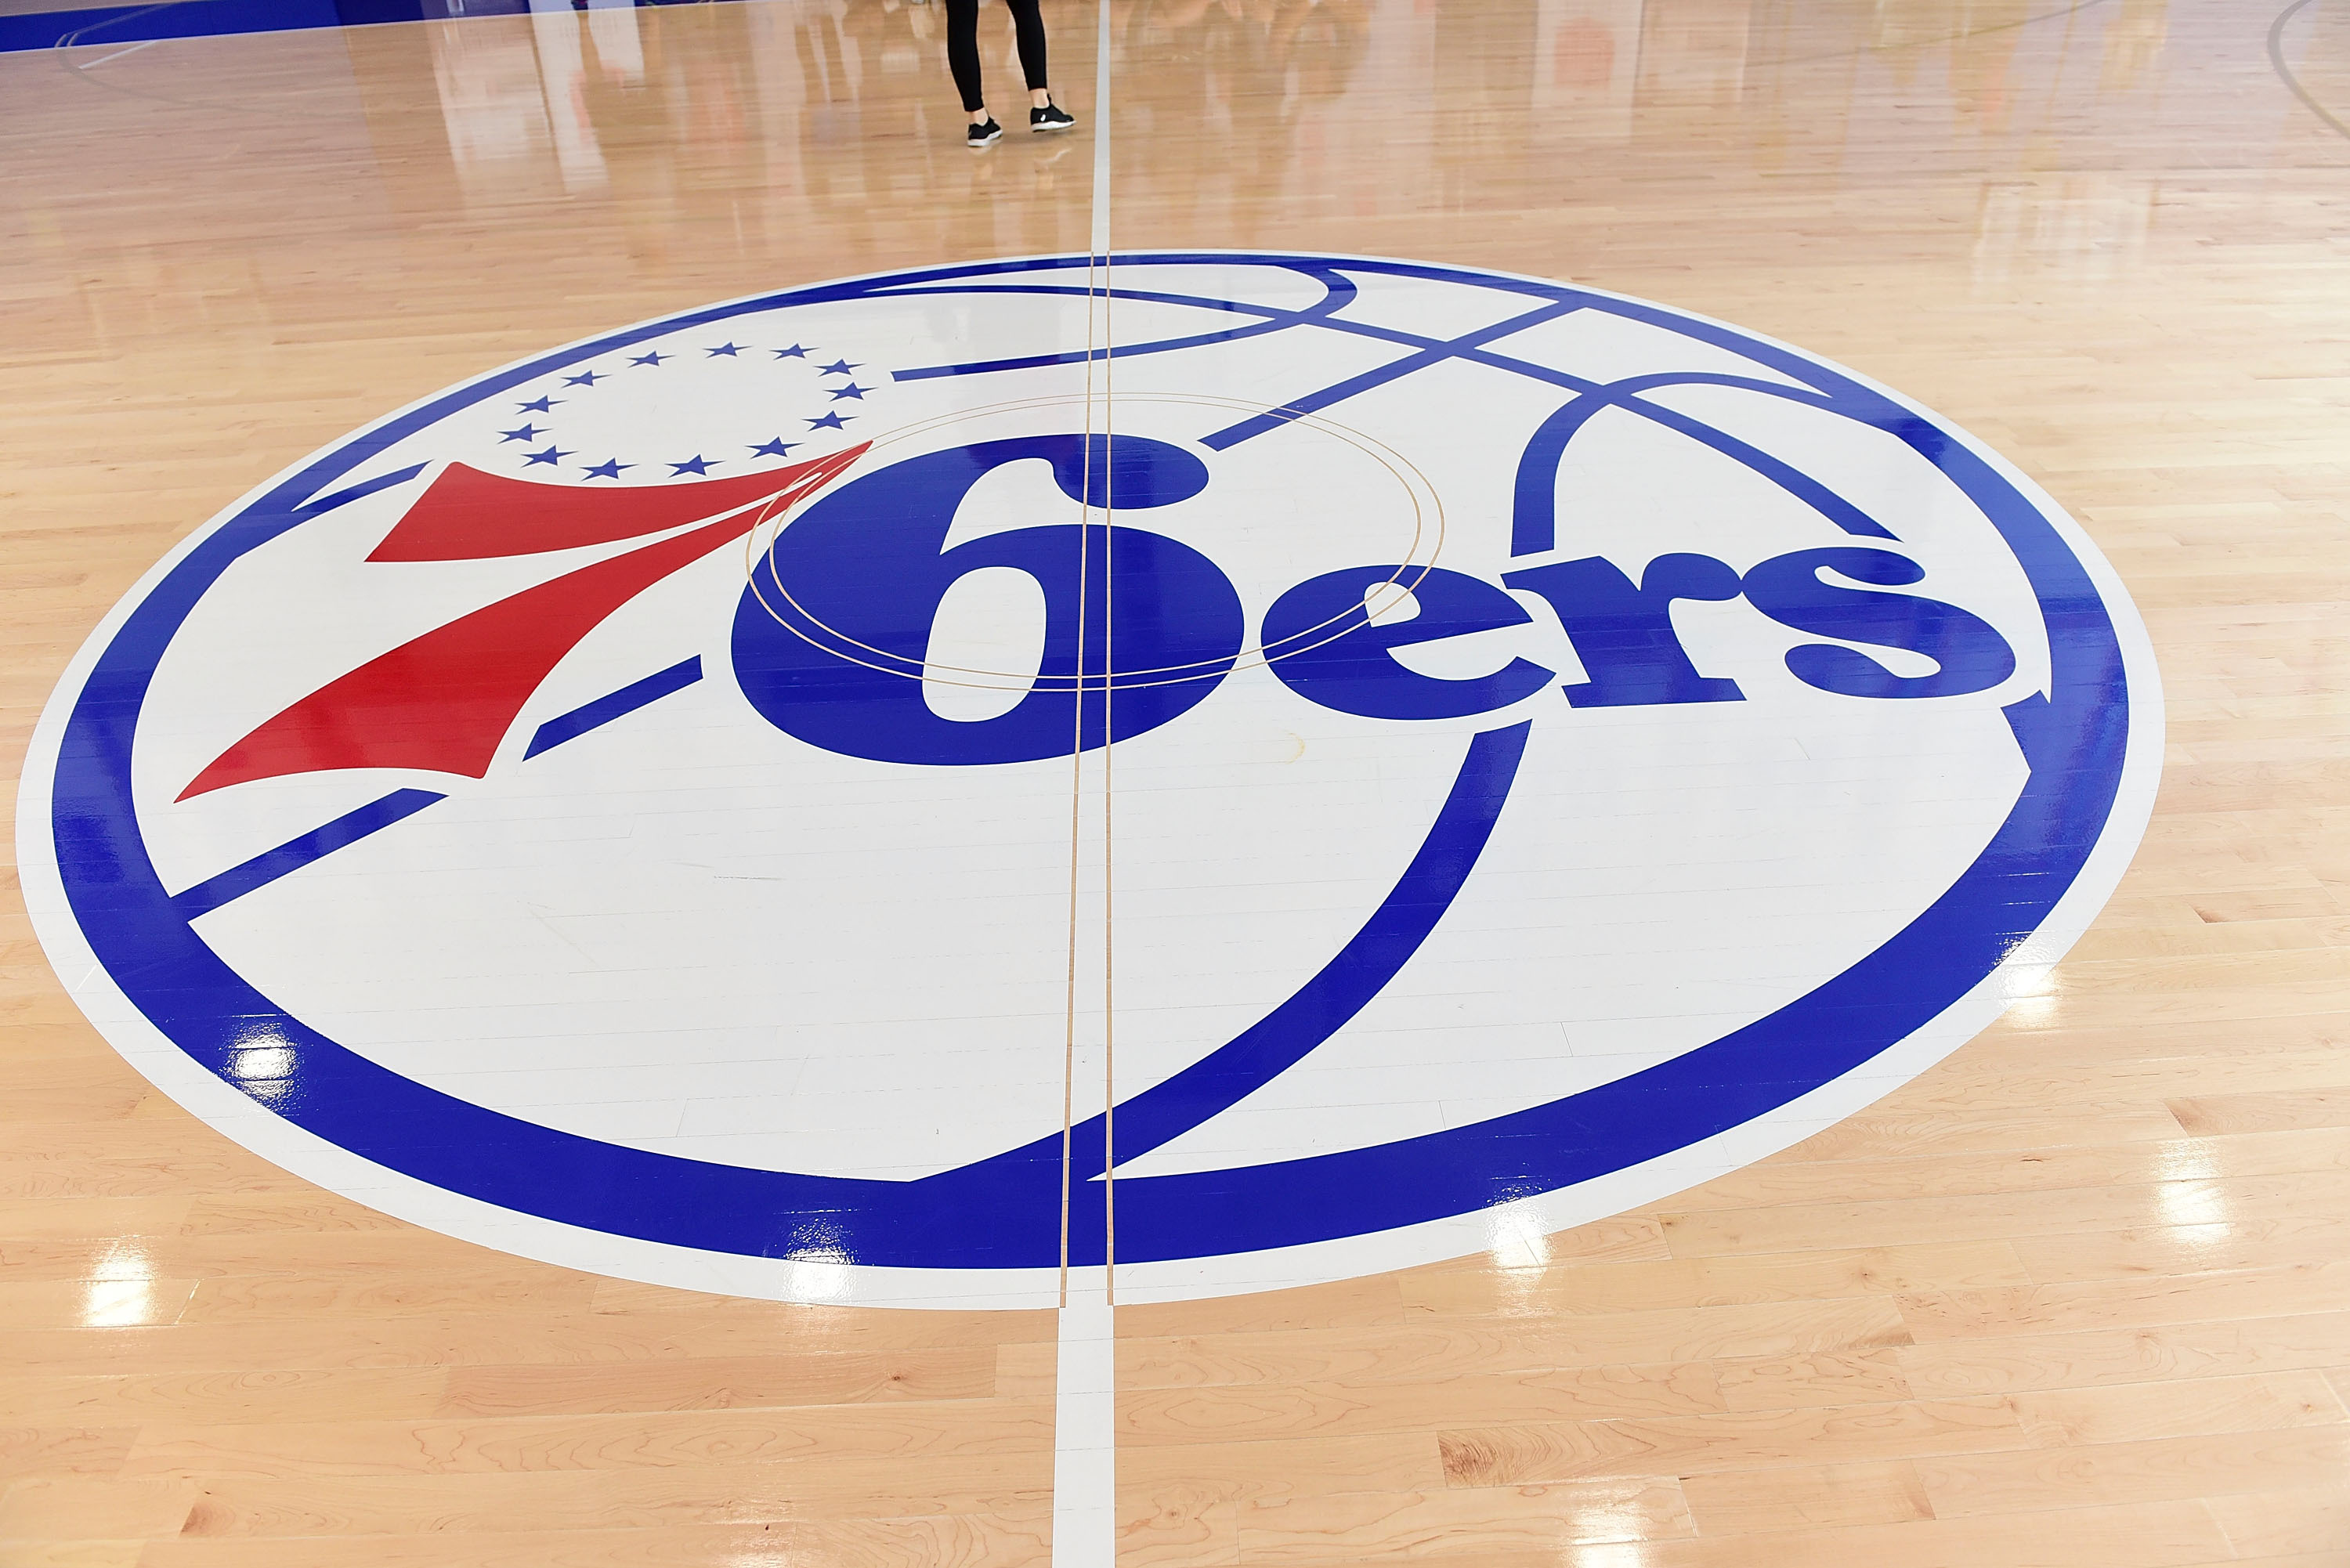 reputable site 20a58 2a7ad 76ers, NJ Devils Agree to Multiyear Contract with Caesars ...